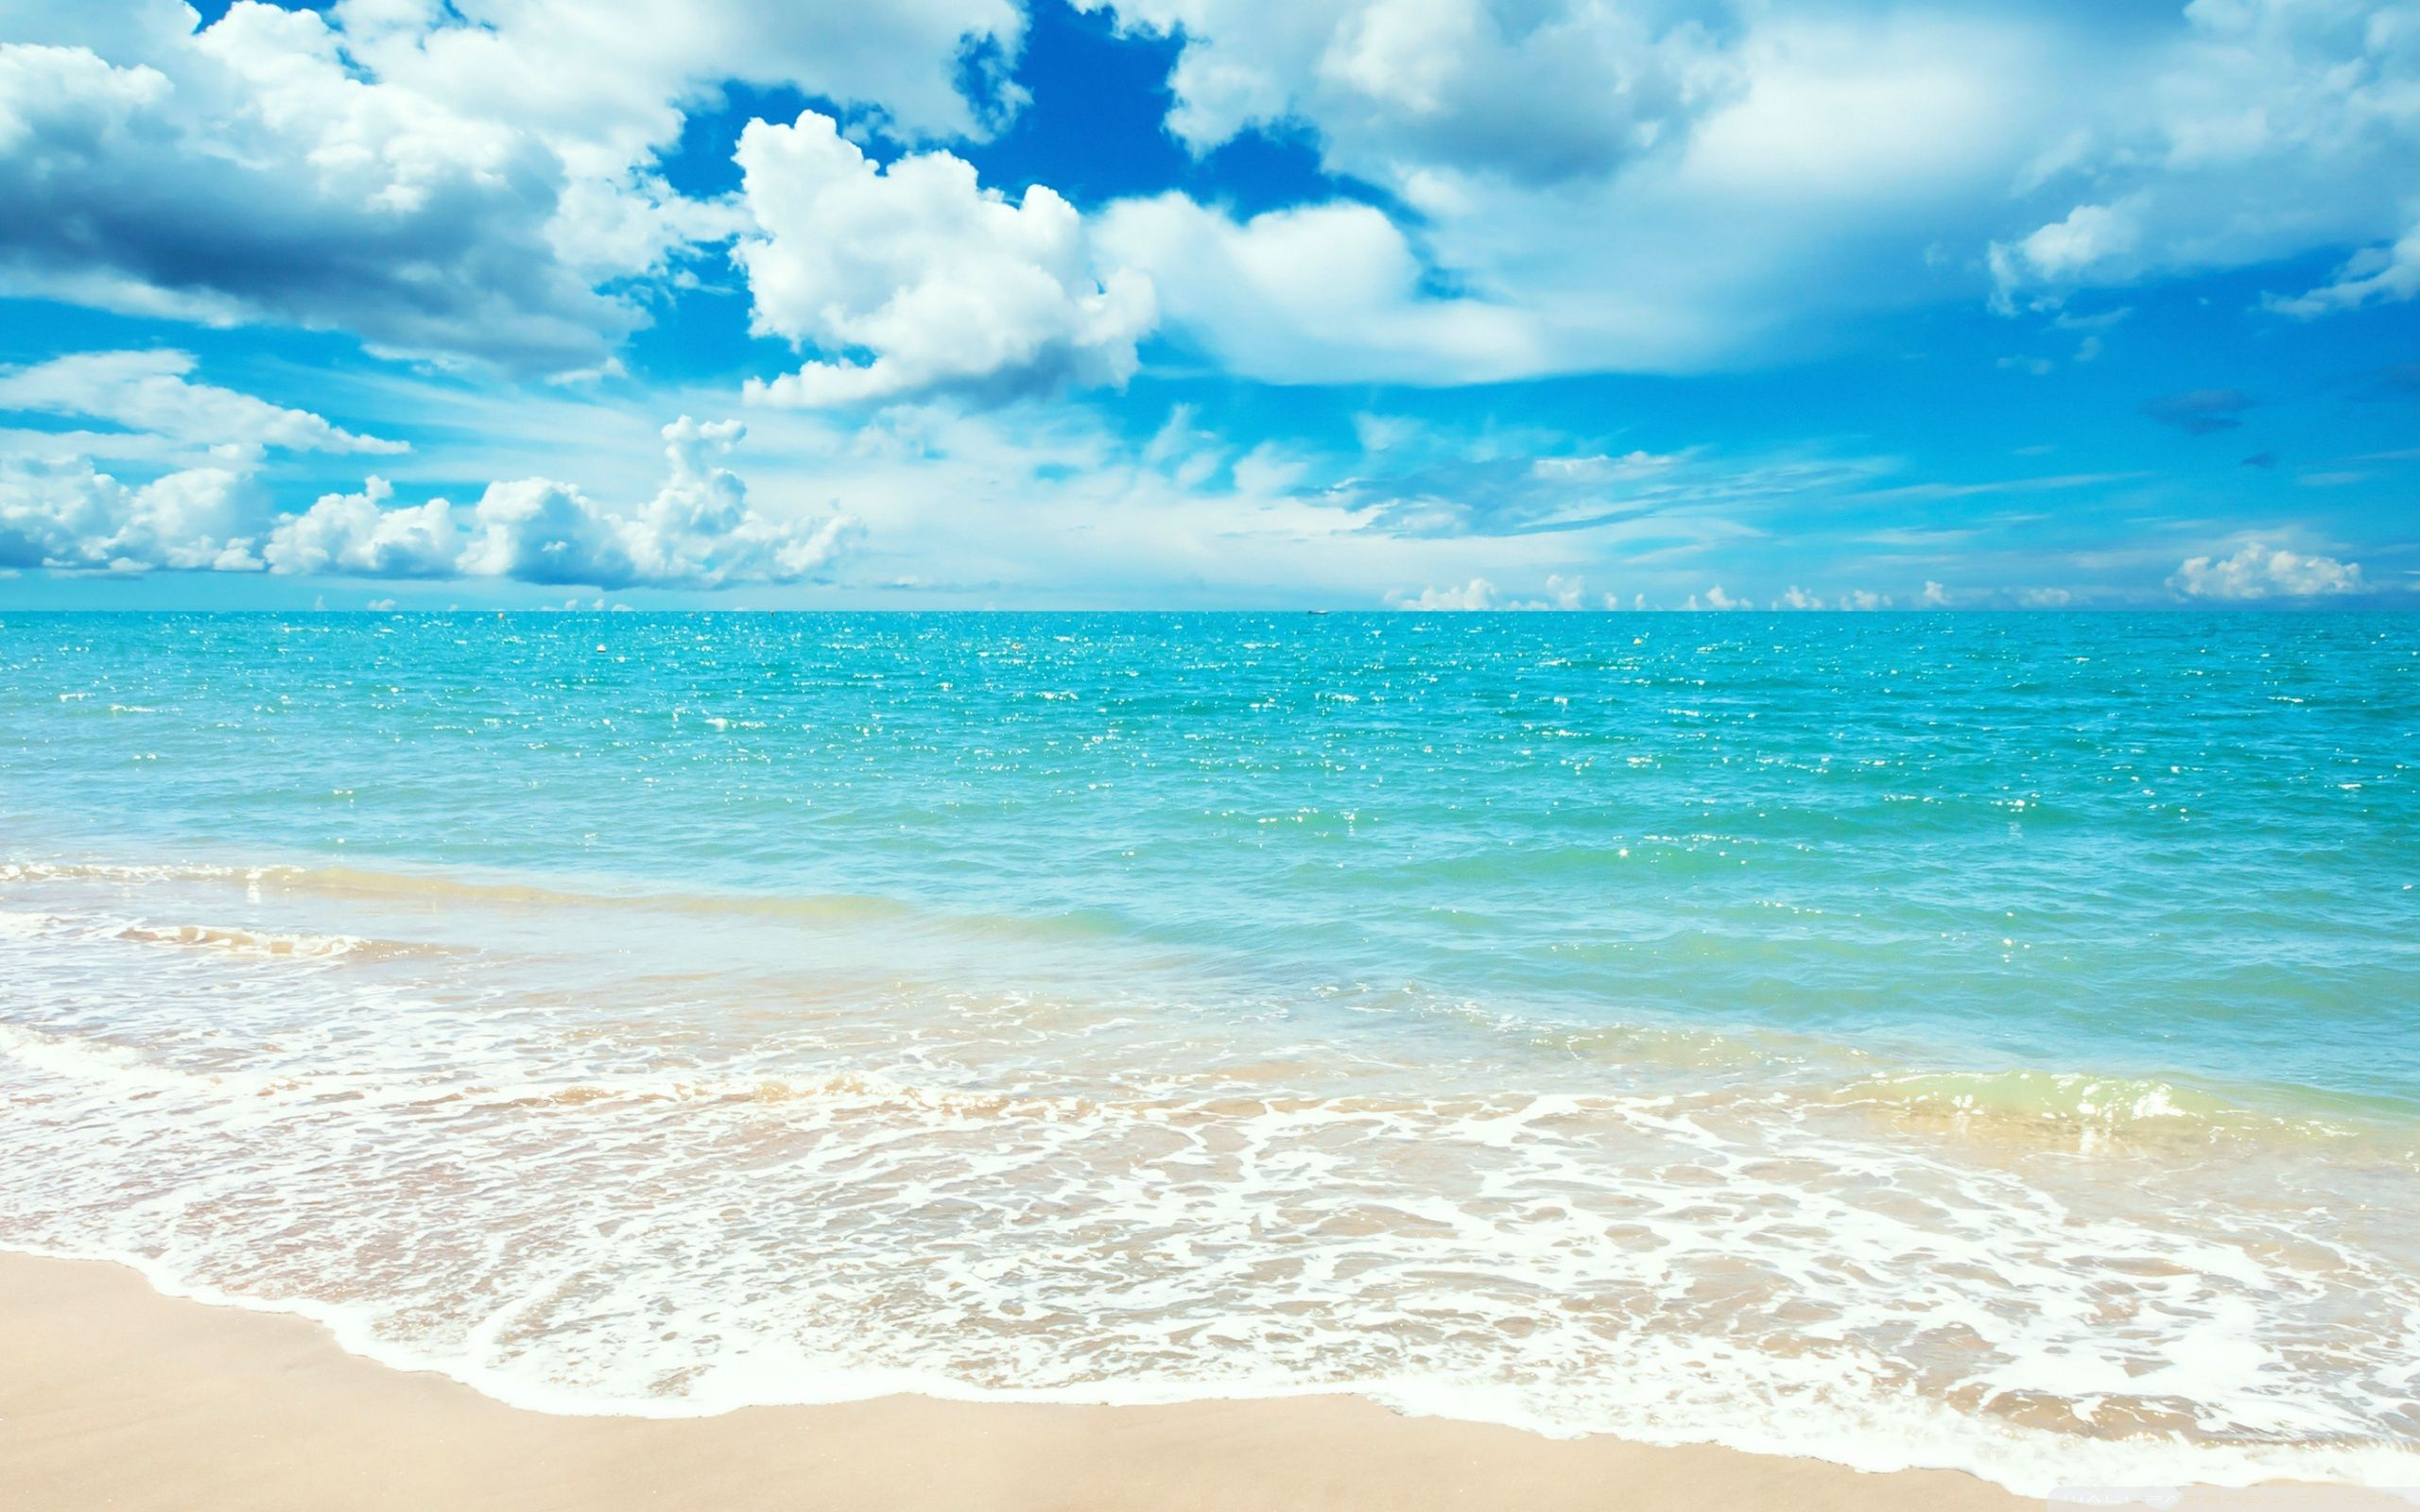 50 AMAZING BEACH WALLPAPERS FREE TO DOWNLOAD Beach